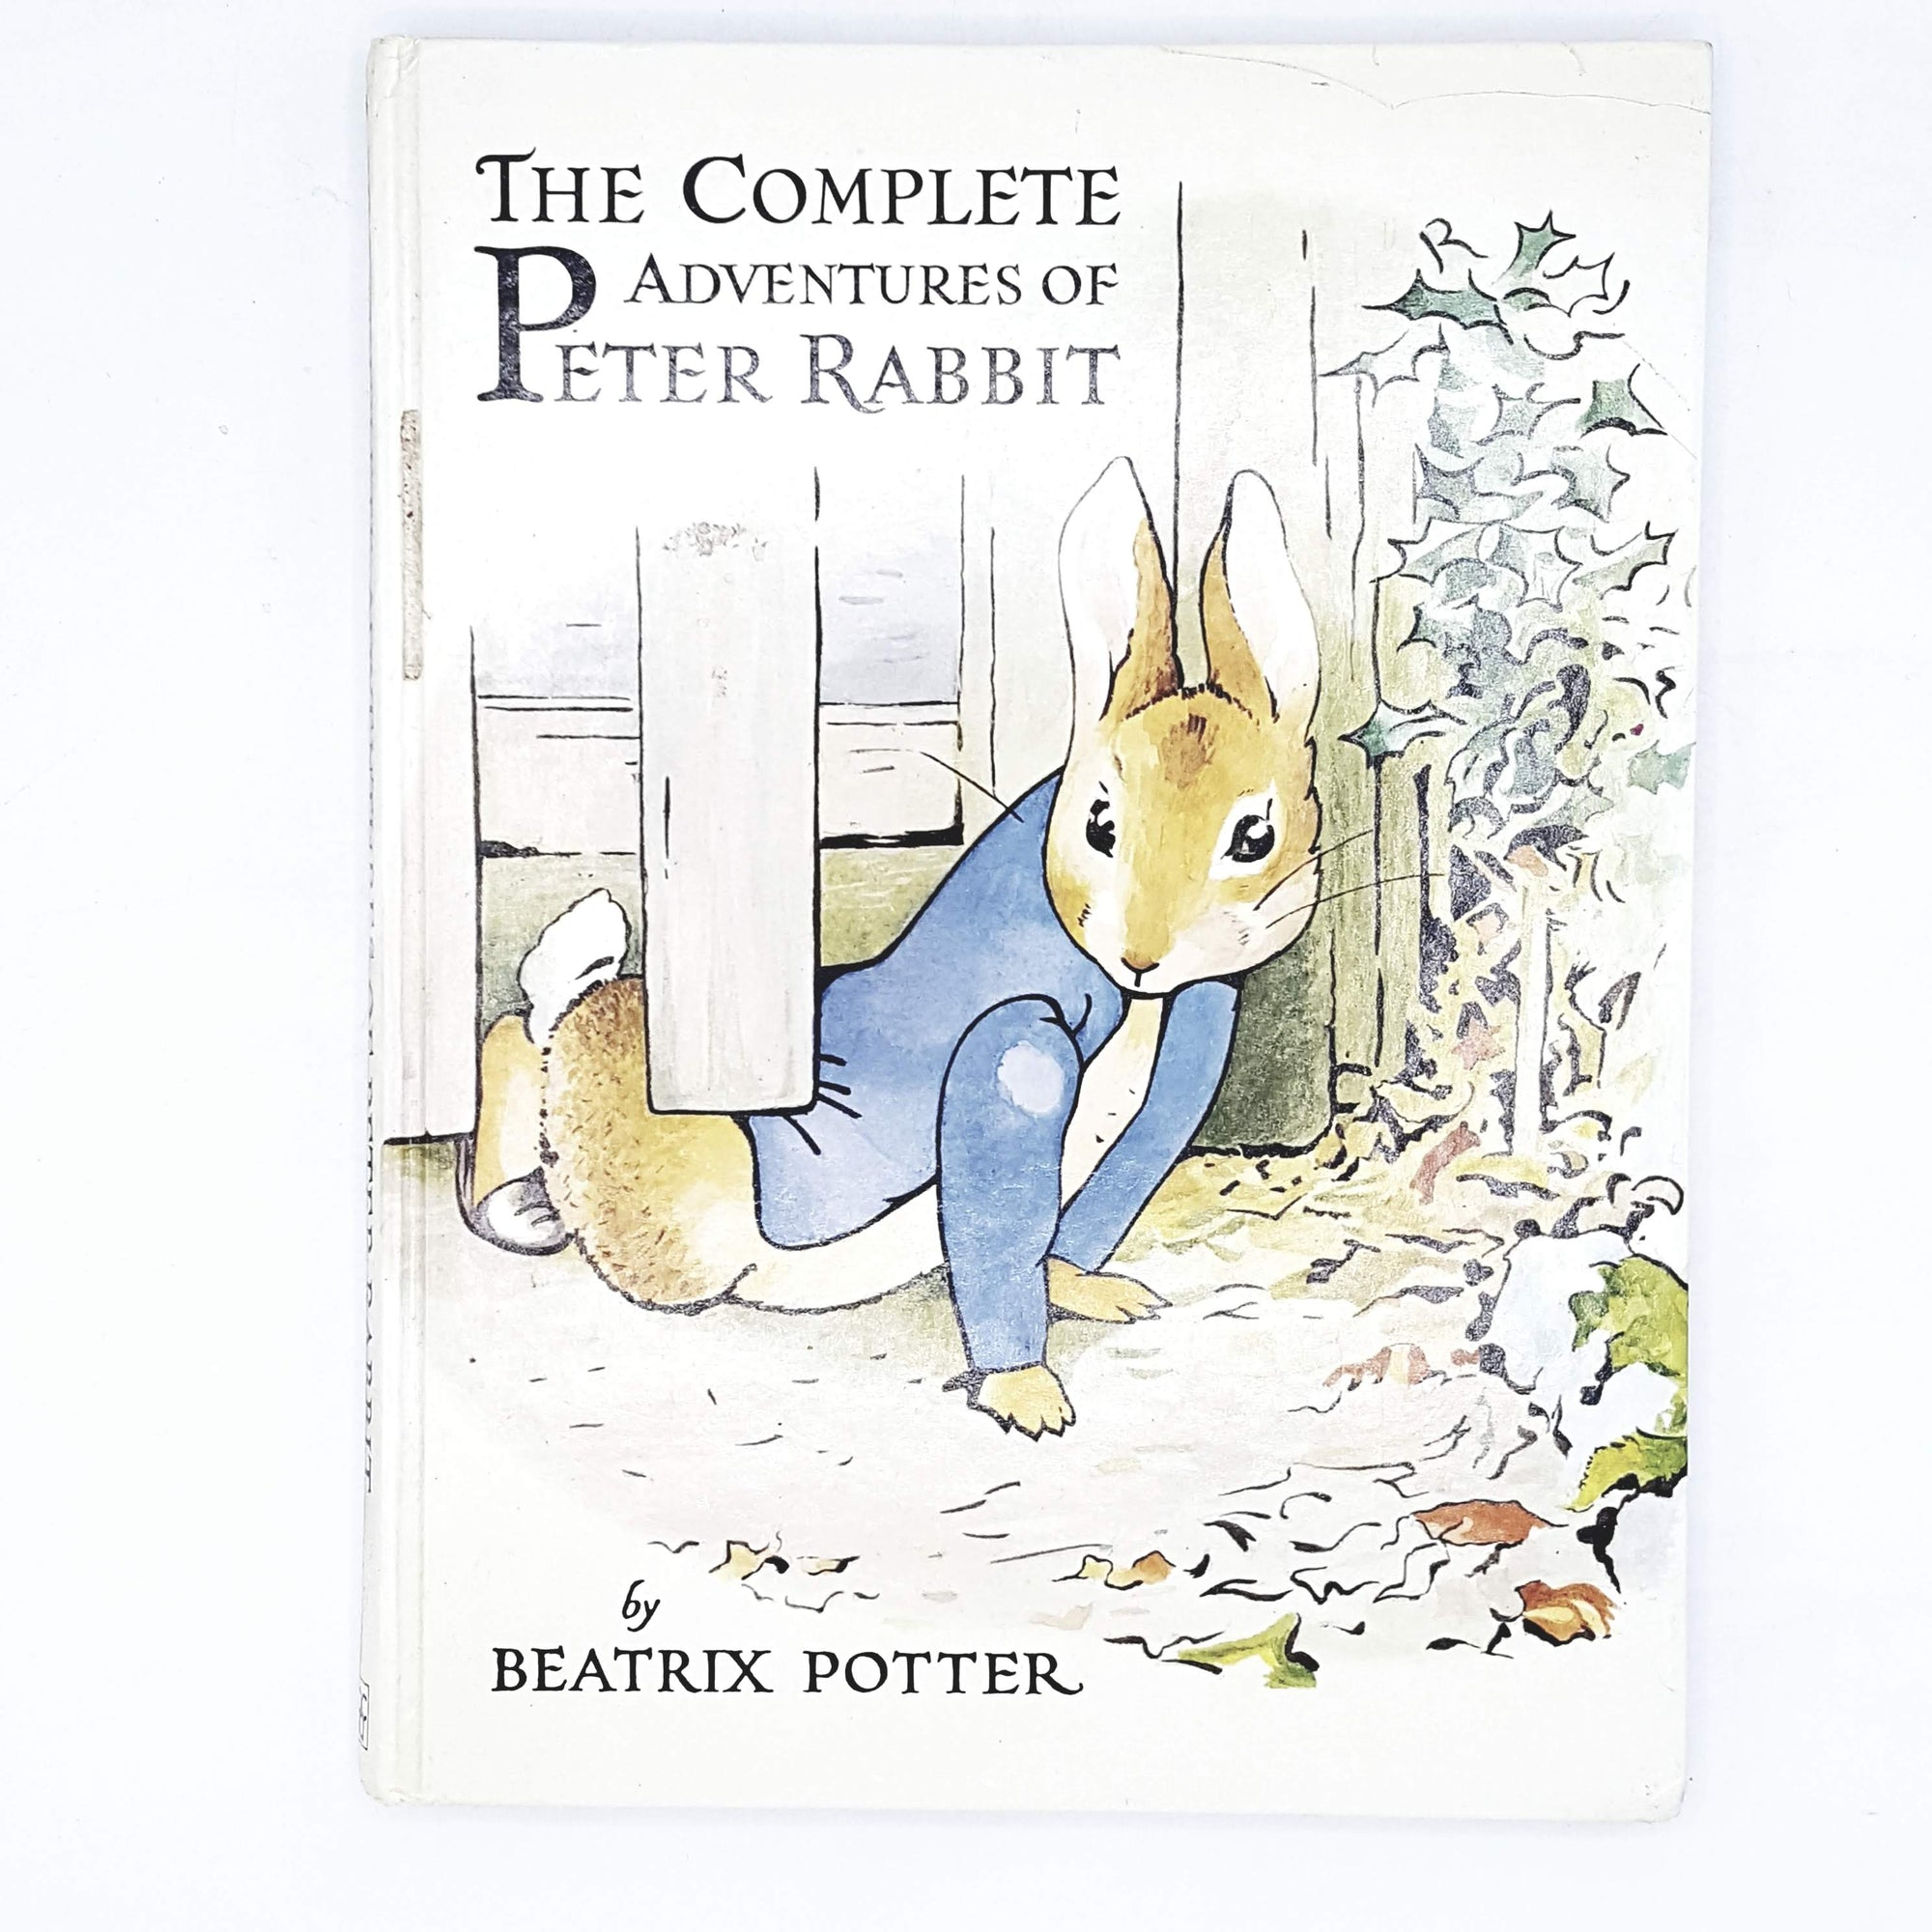 Beatrix Potter's The Complete Adventures of Peter Rabbit 1983